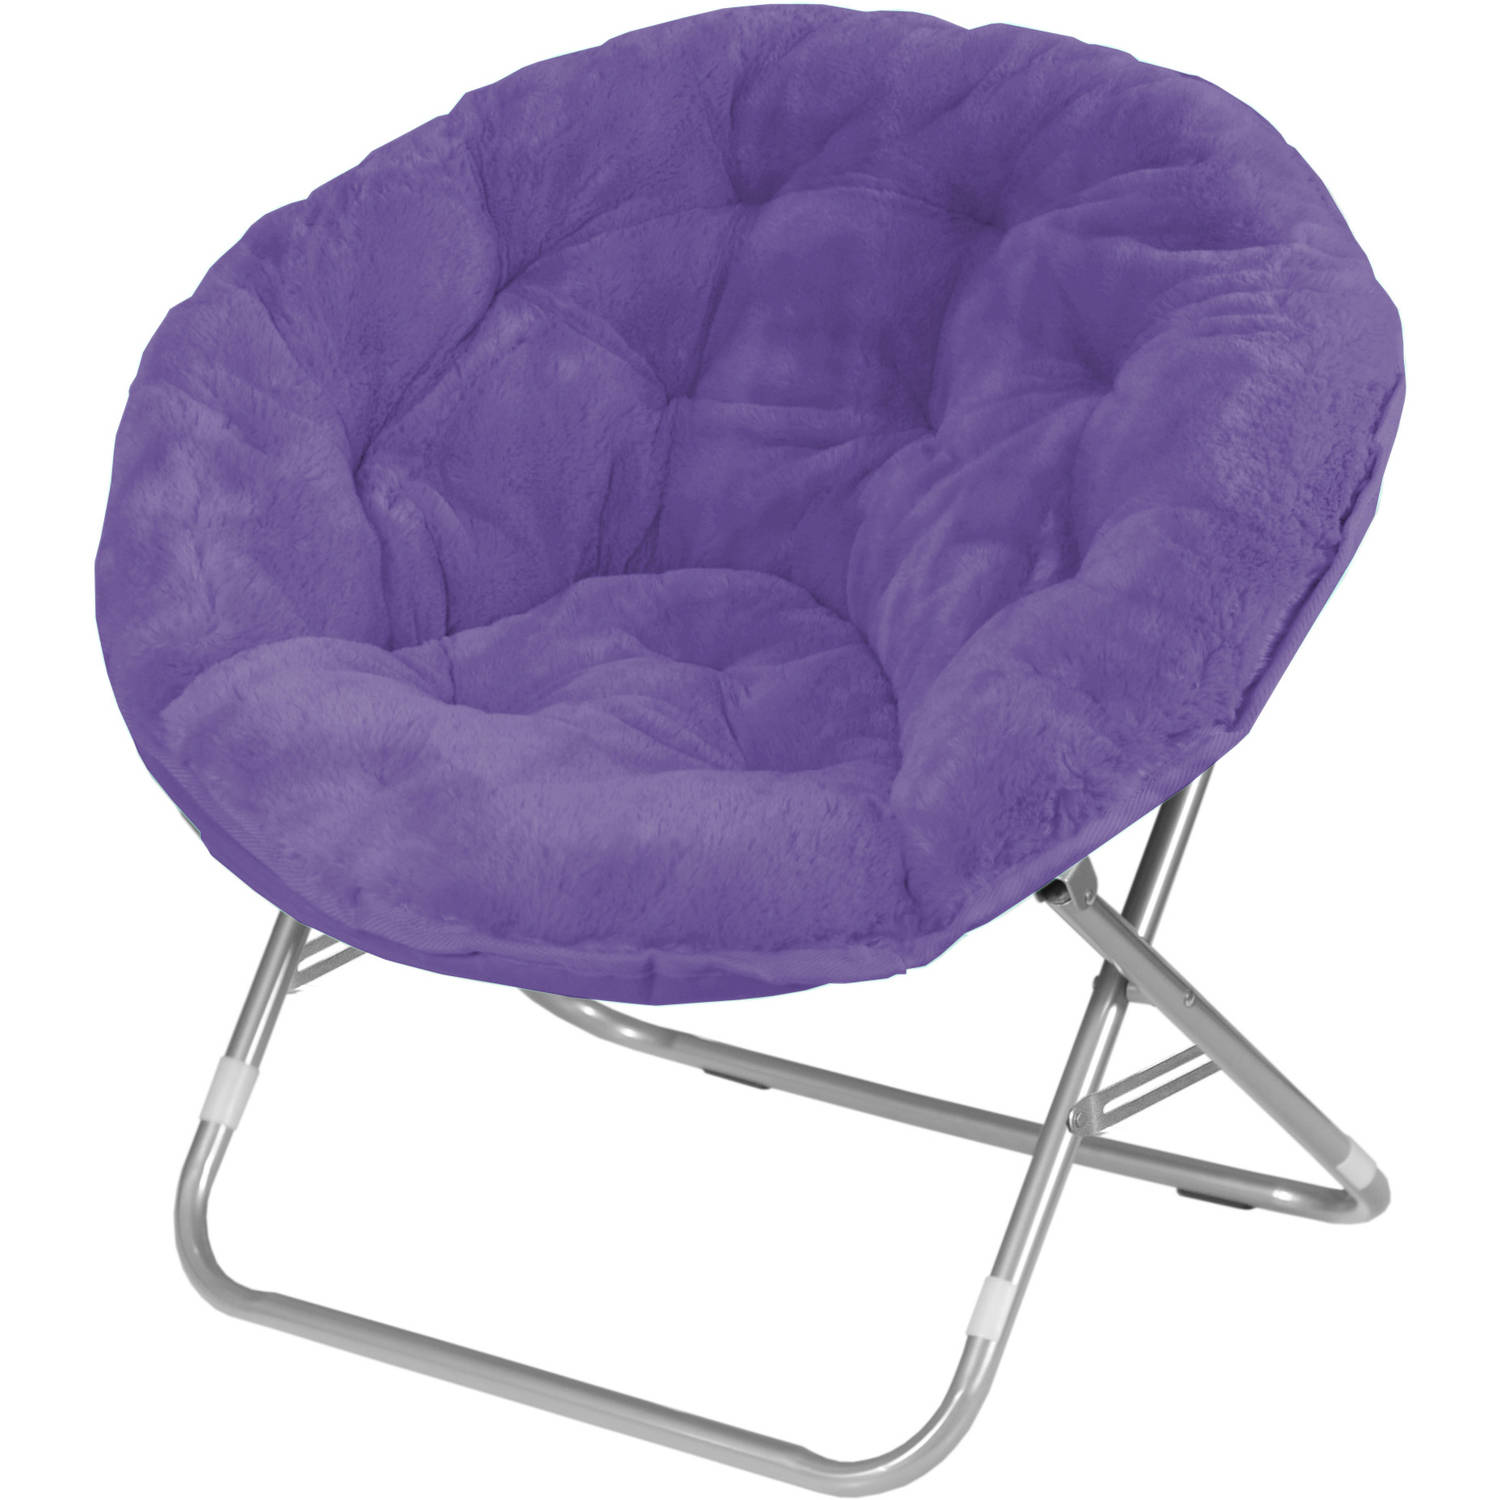 Mainstays Adult Faux Fur Saucer Chair, Purple